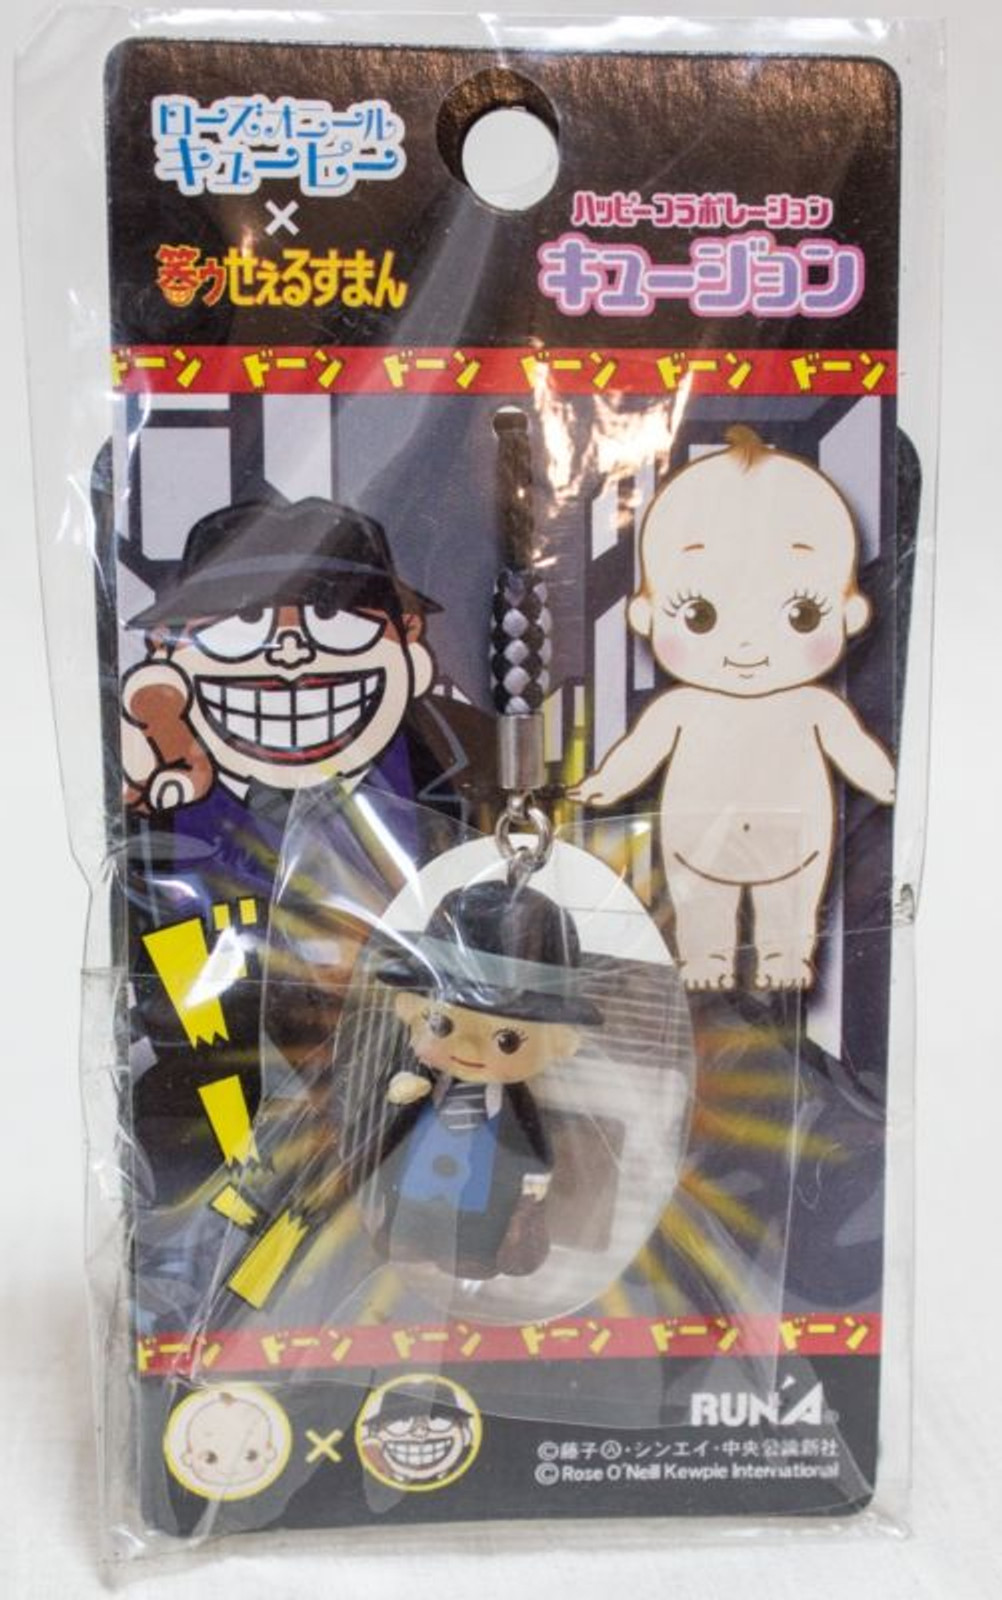 Warau Salesman Rose O'neill Kewpie Kewsion Strap JAPAN ANIME